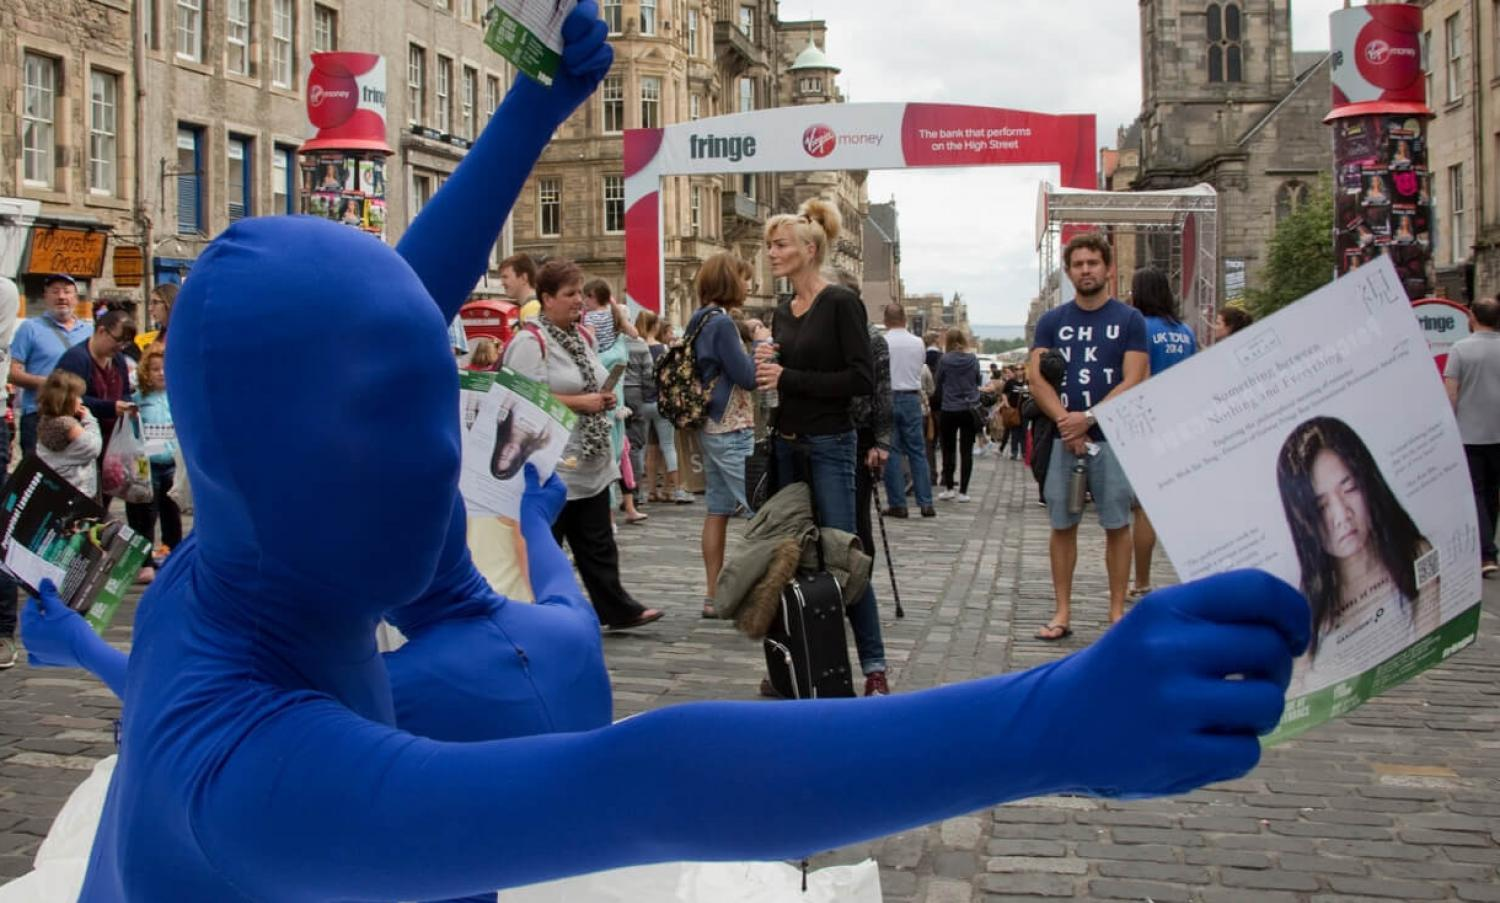 Performers handing out leaflets at Edinburgh Fringe Festival, Royal Mile